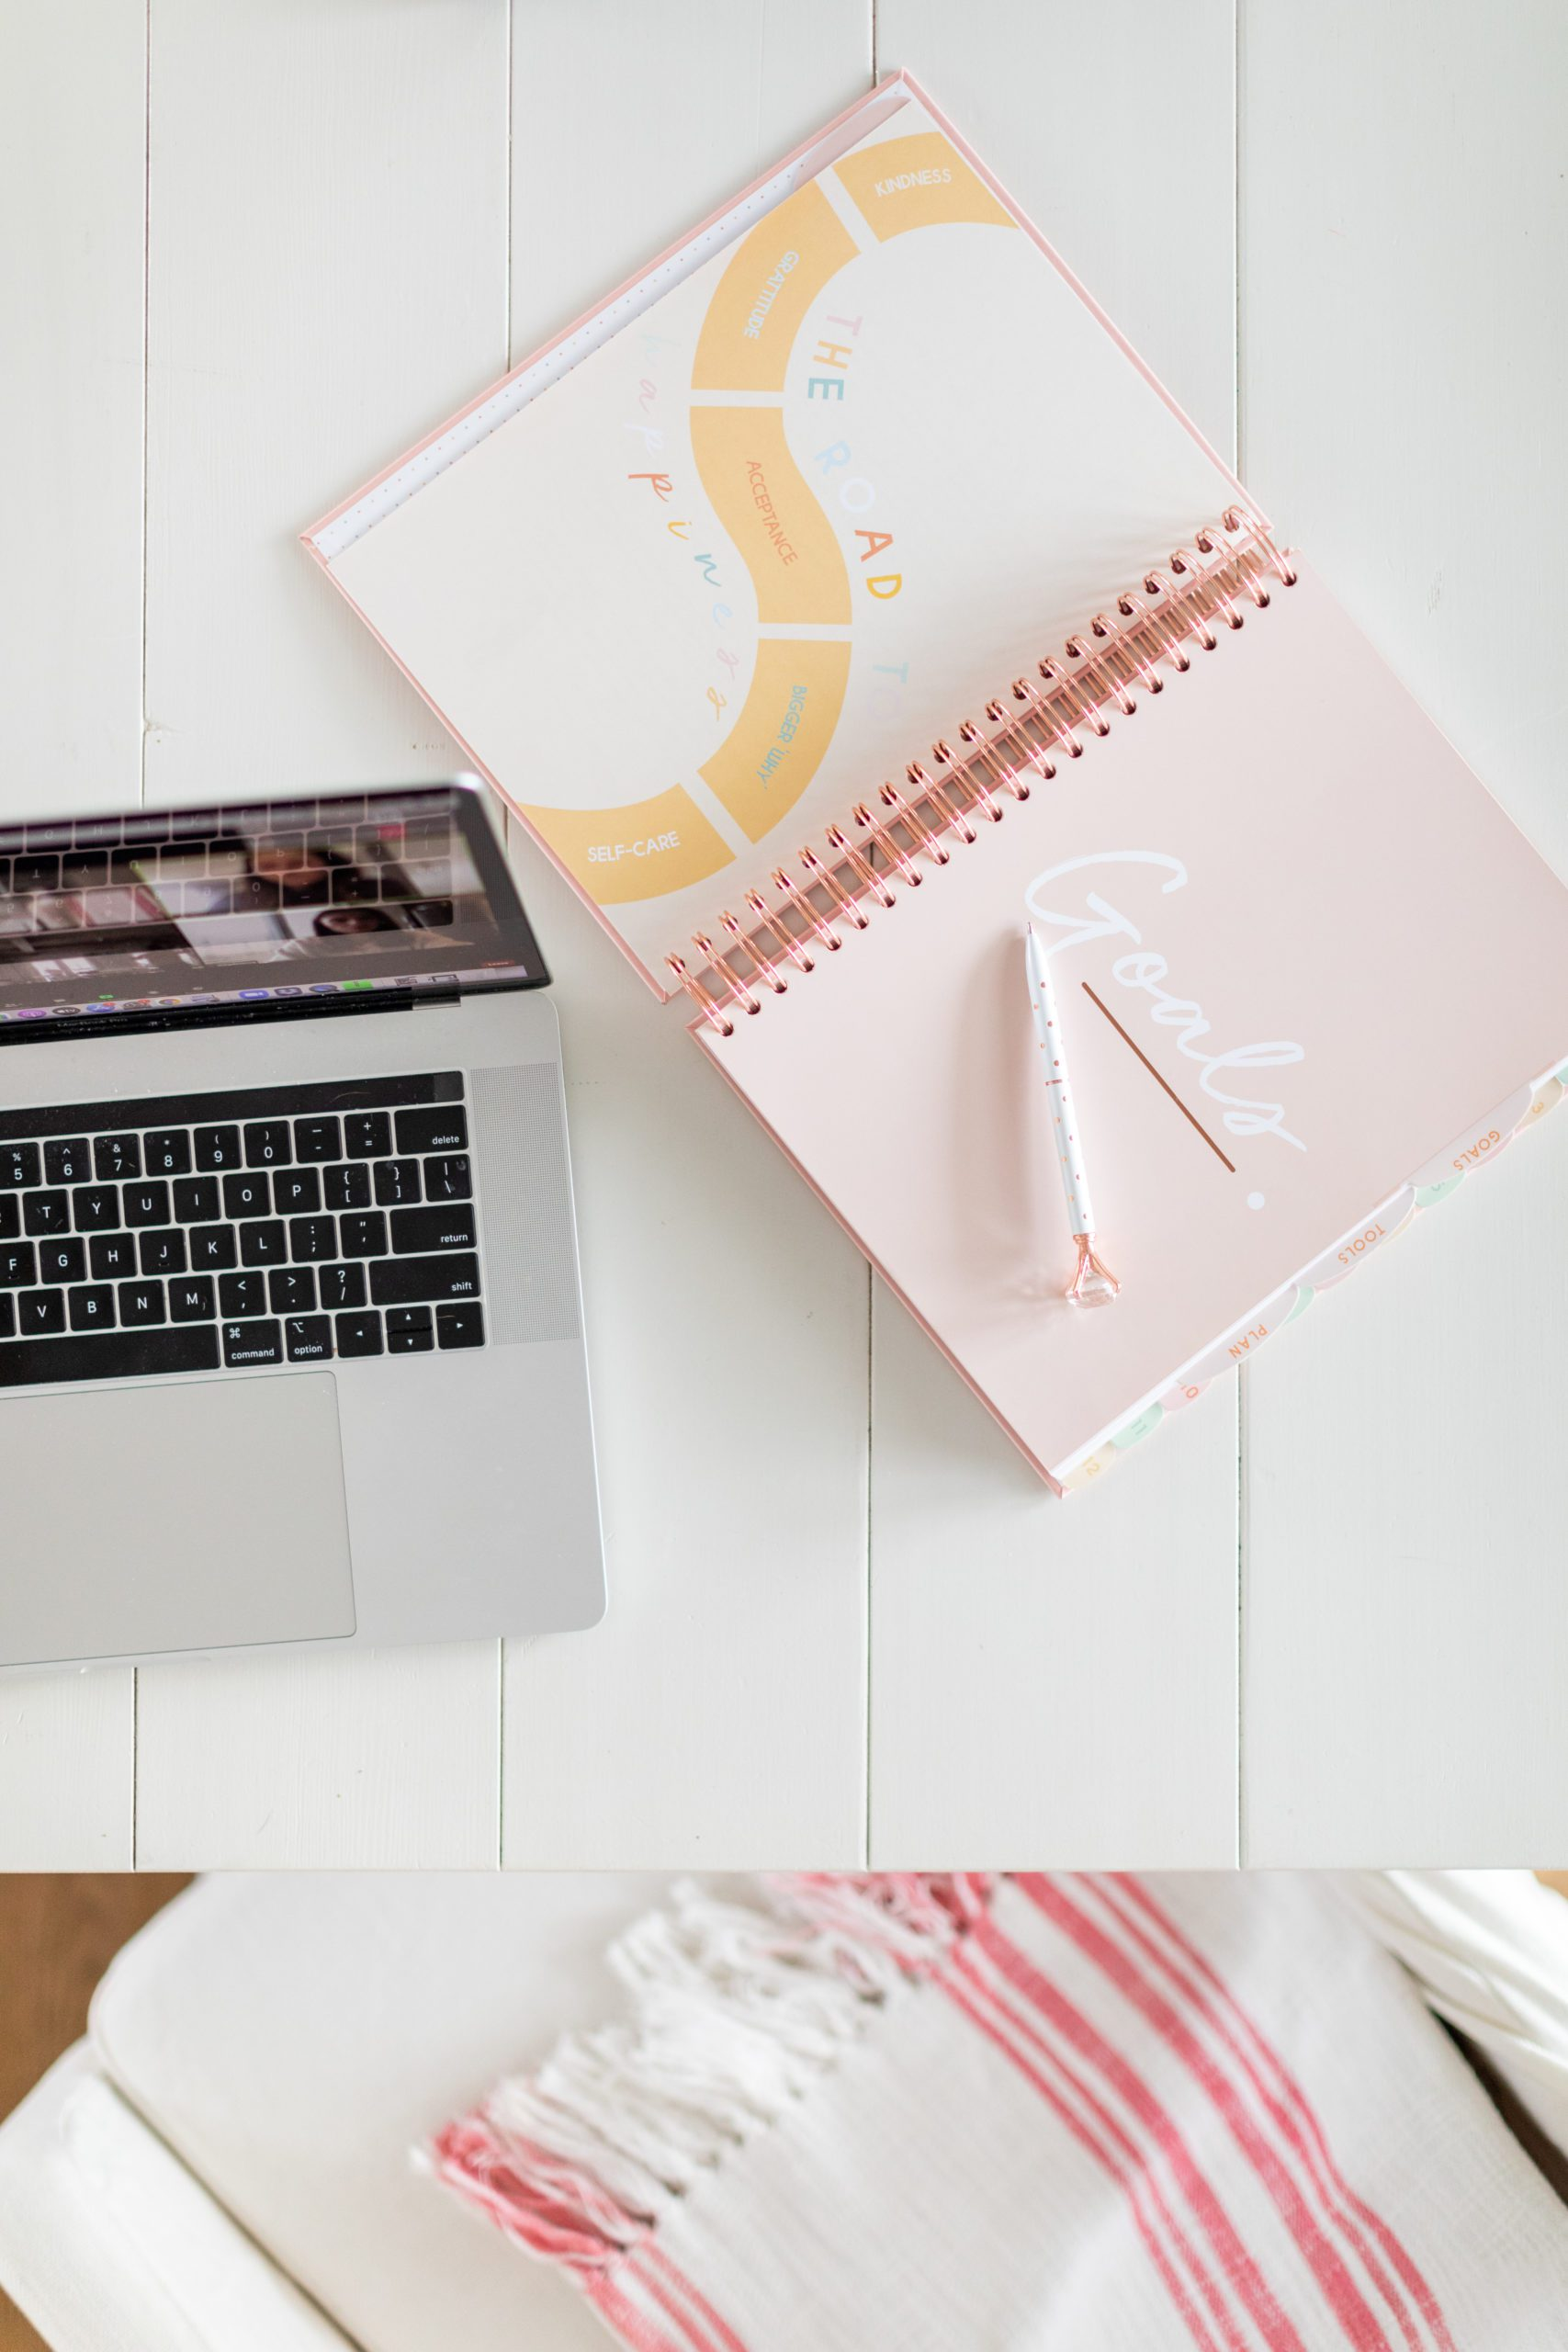 Jillian Harris's The Brand Strategy course is officially live!